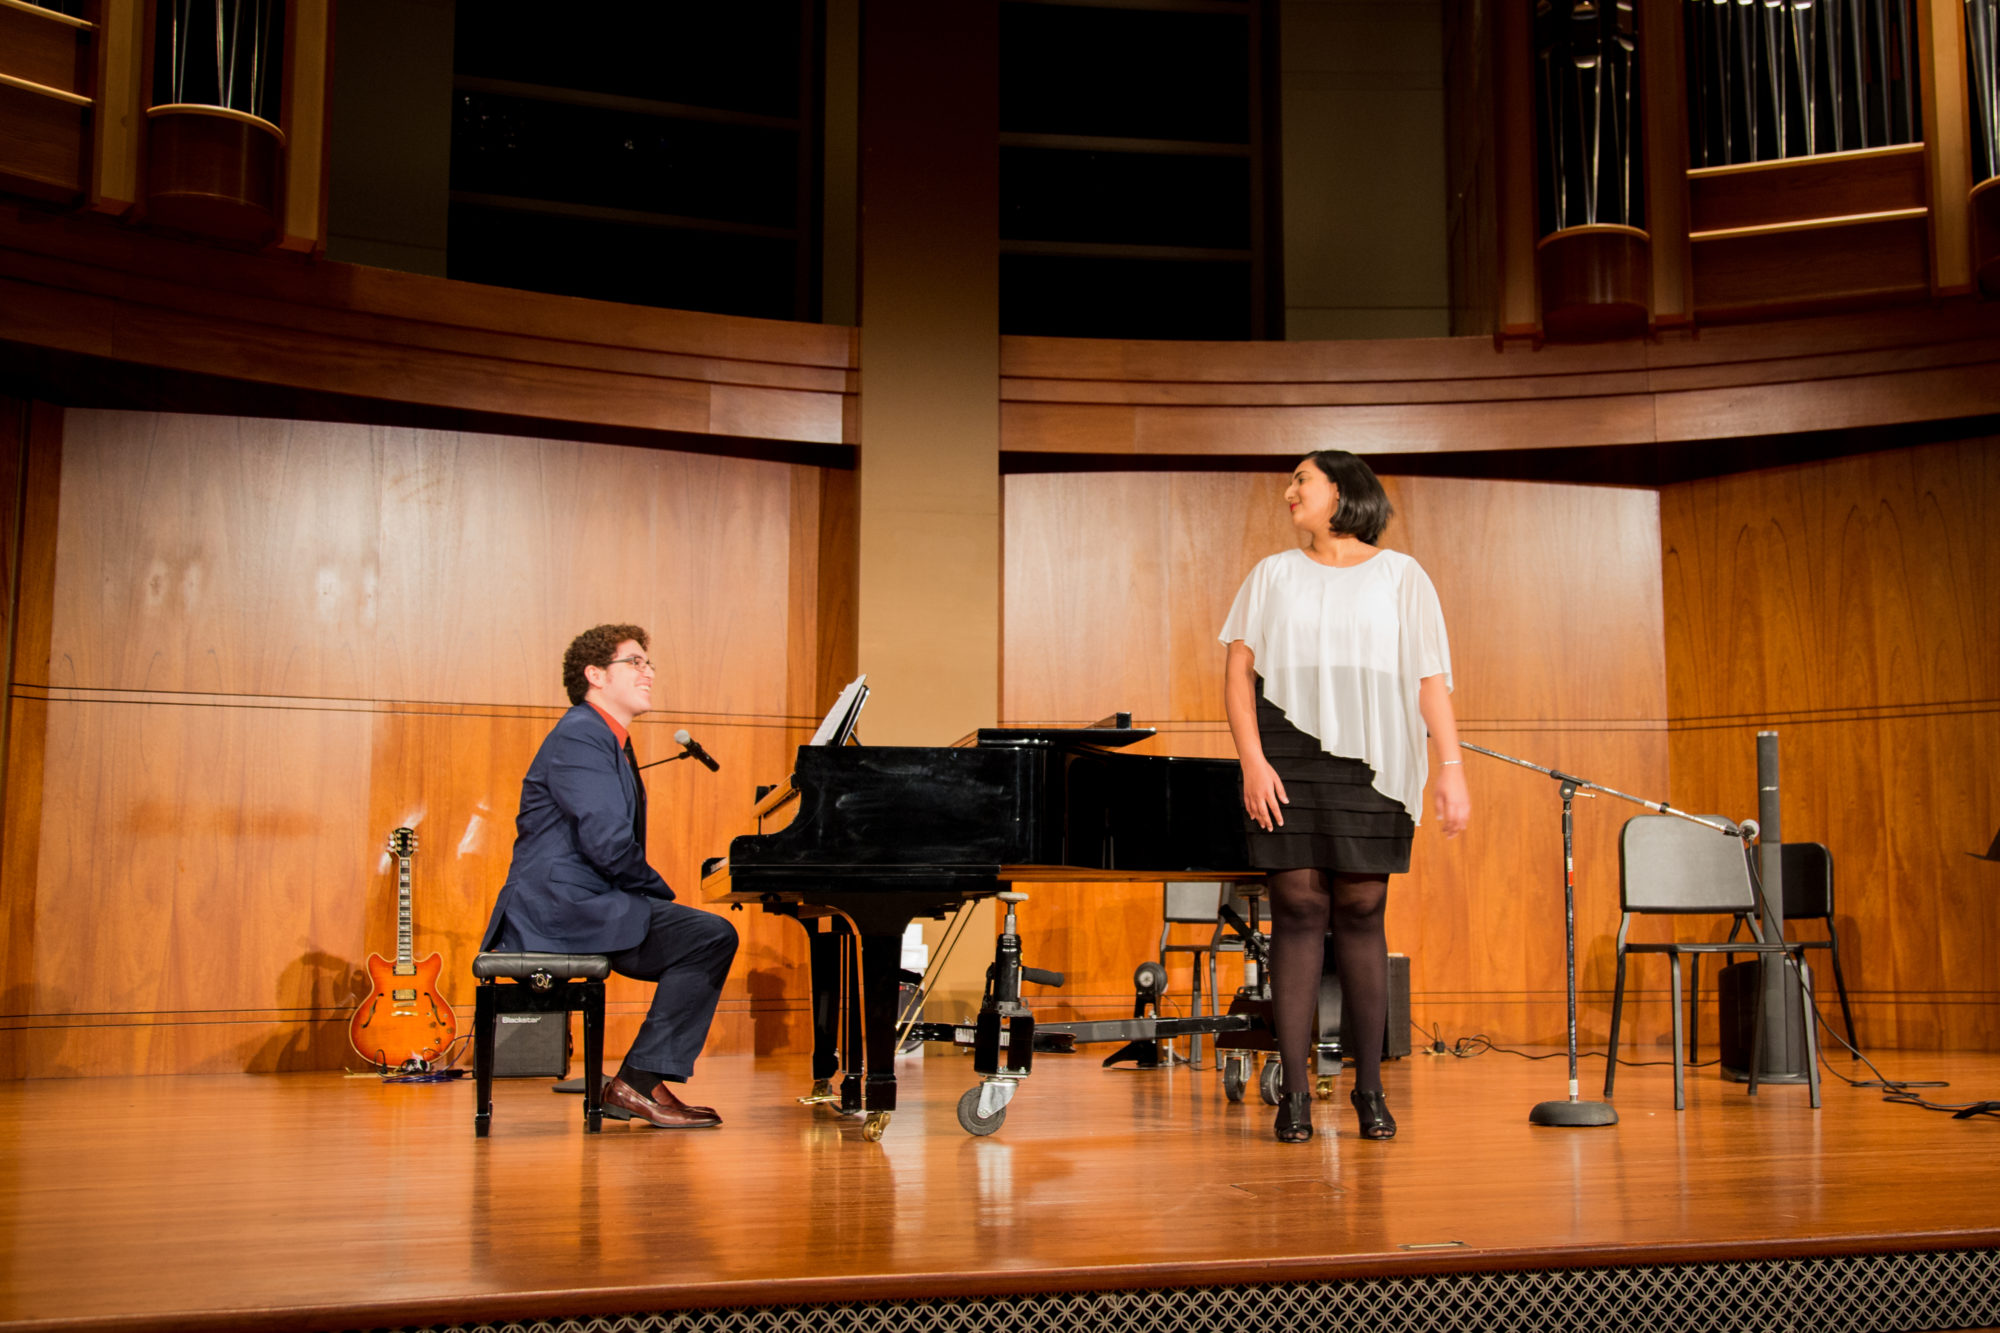 Arsh and John – Voice and Piano teachers at Faculty Recital